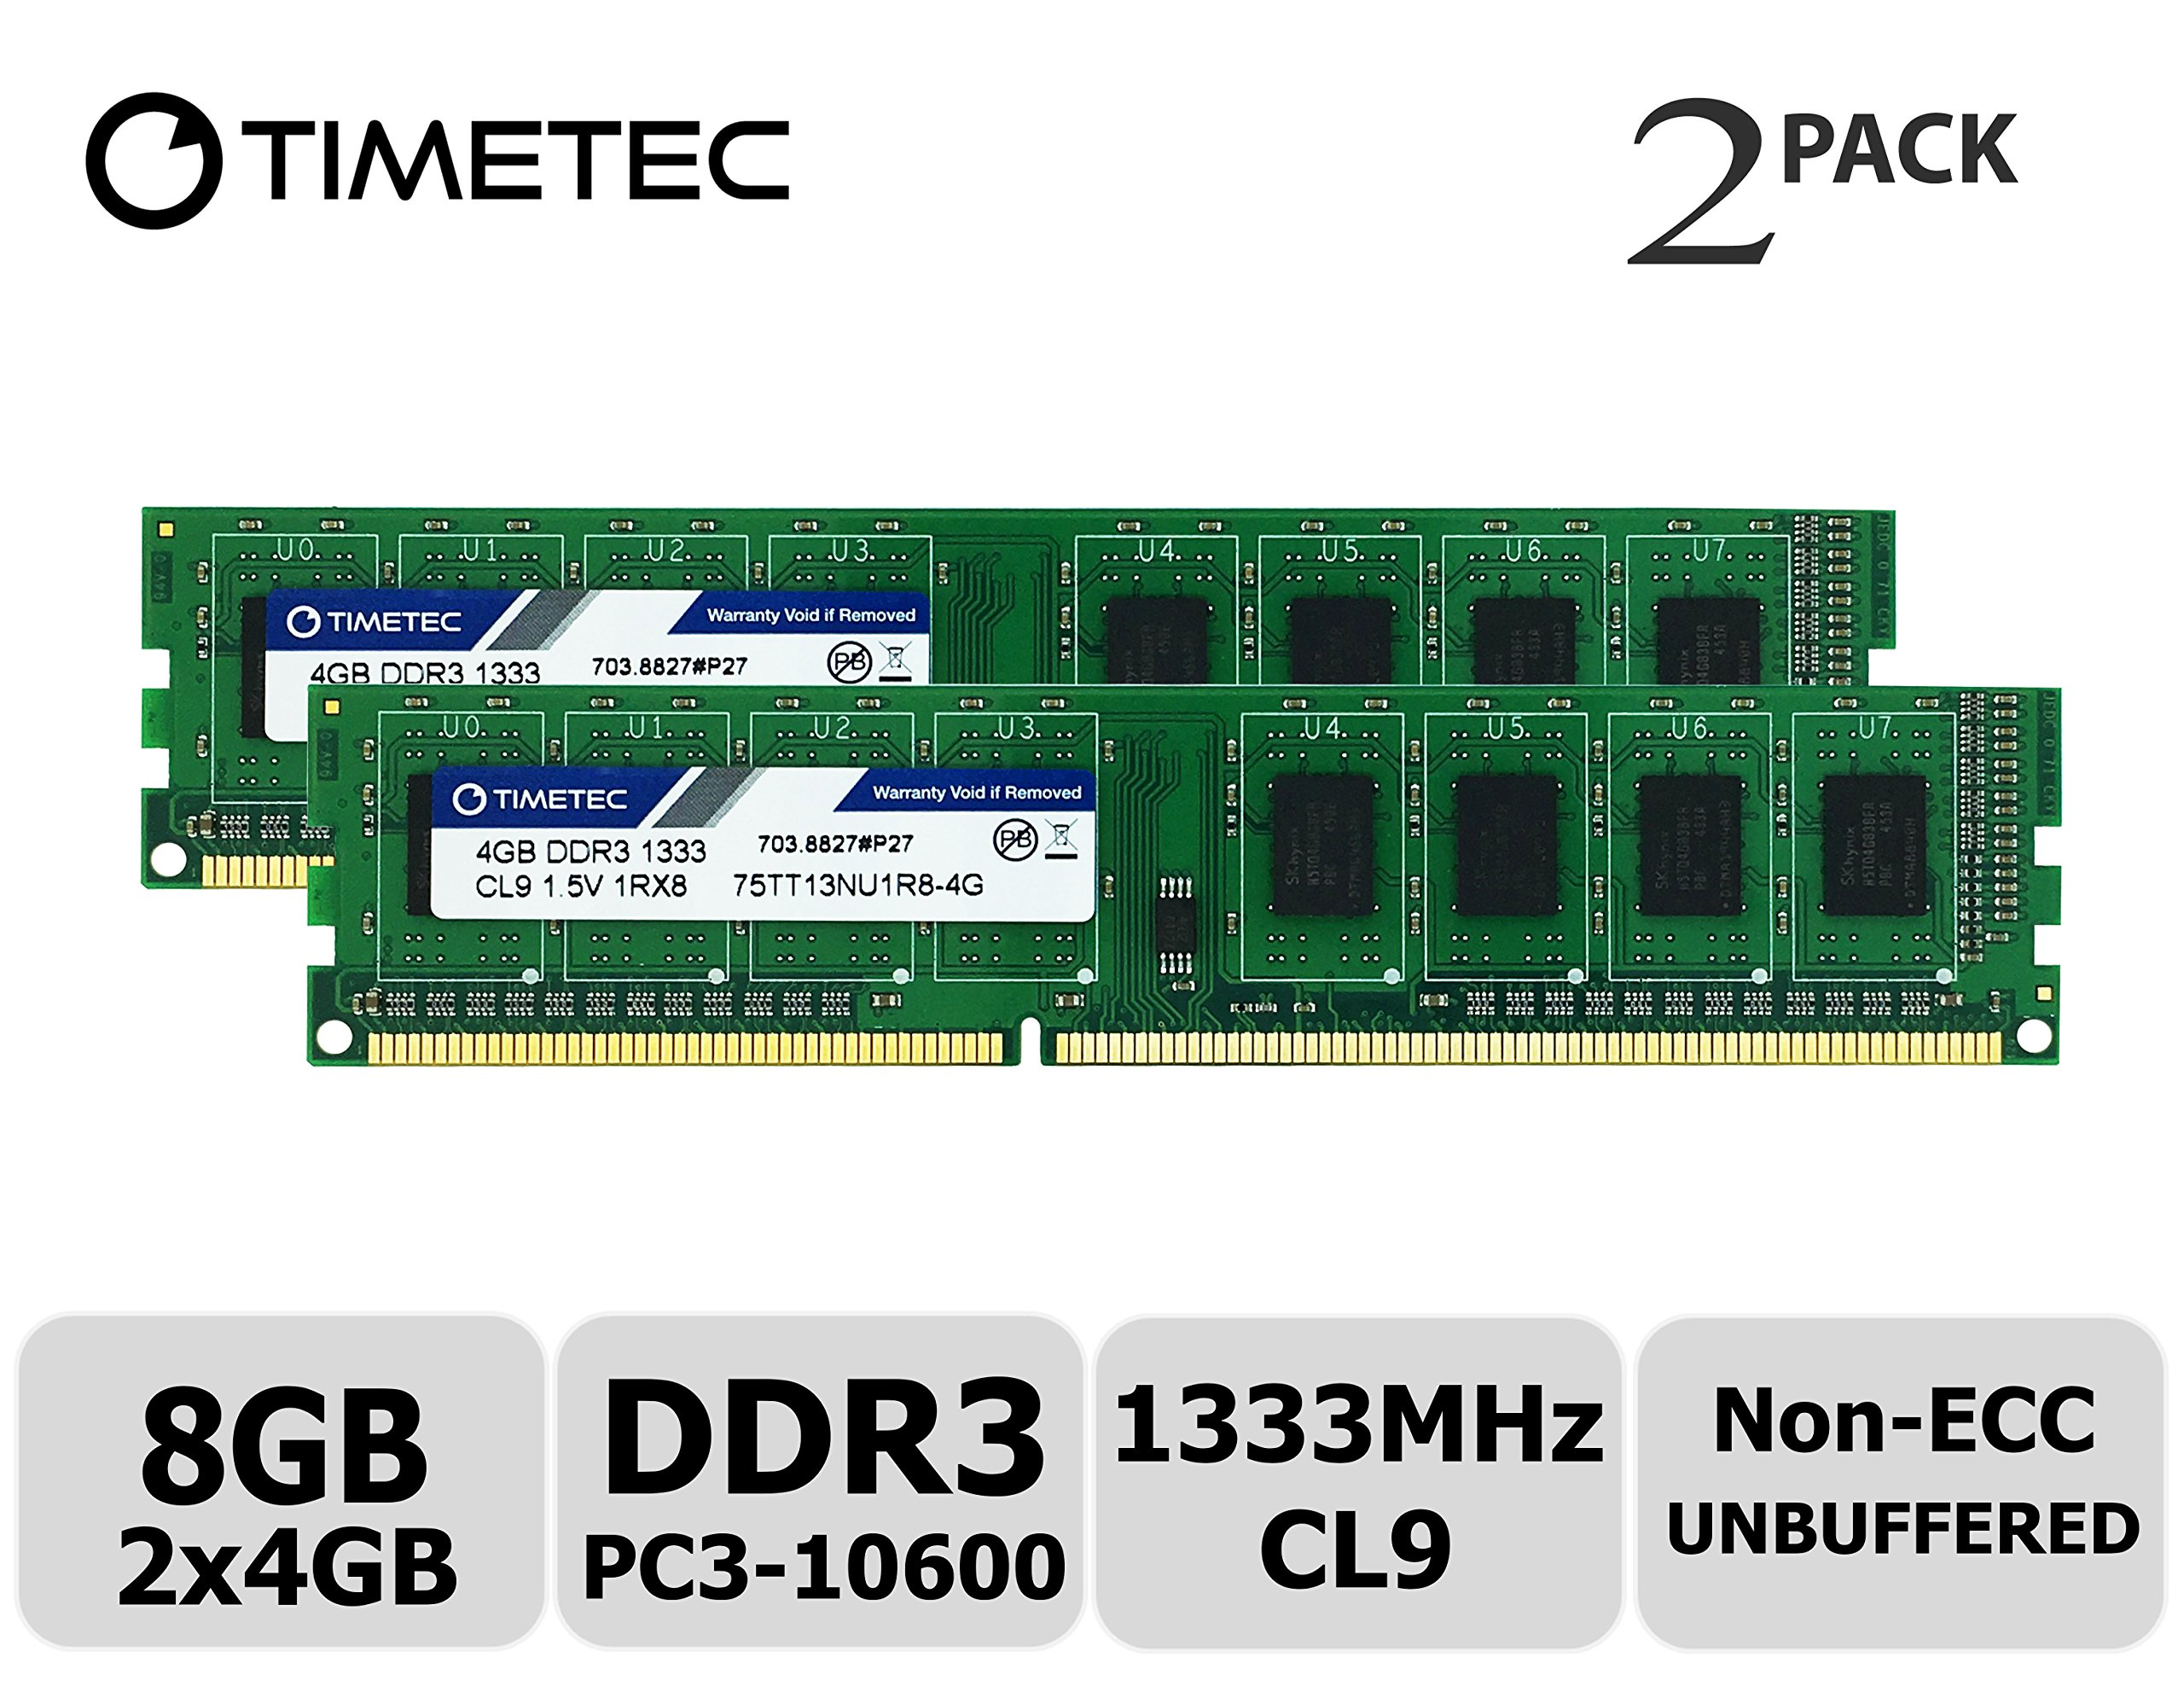 Timetec Hynix IC 8GB Kit (2x4GB) DDR3 1333MHz PC3-10600 Unbuffered Non-ECC 1.5V CL9 1Rx8 Single Rank 240 Pin UDIMM Desktop Memory Ram Module Upgrade (High Density 8GB Kit (2x4GB))